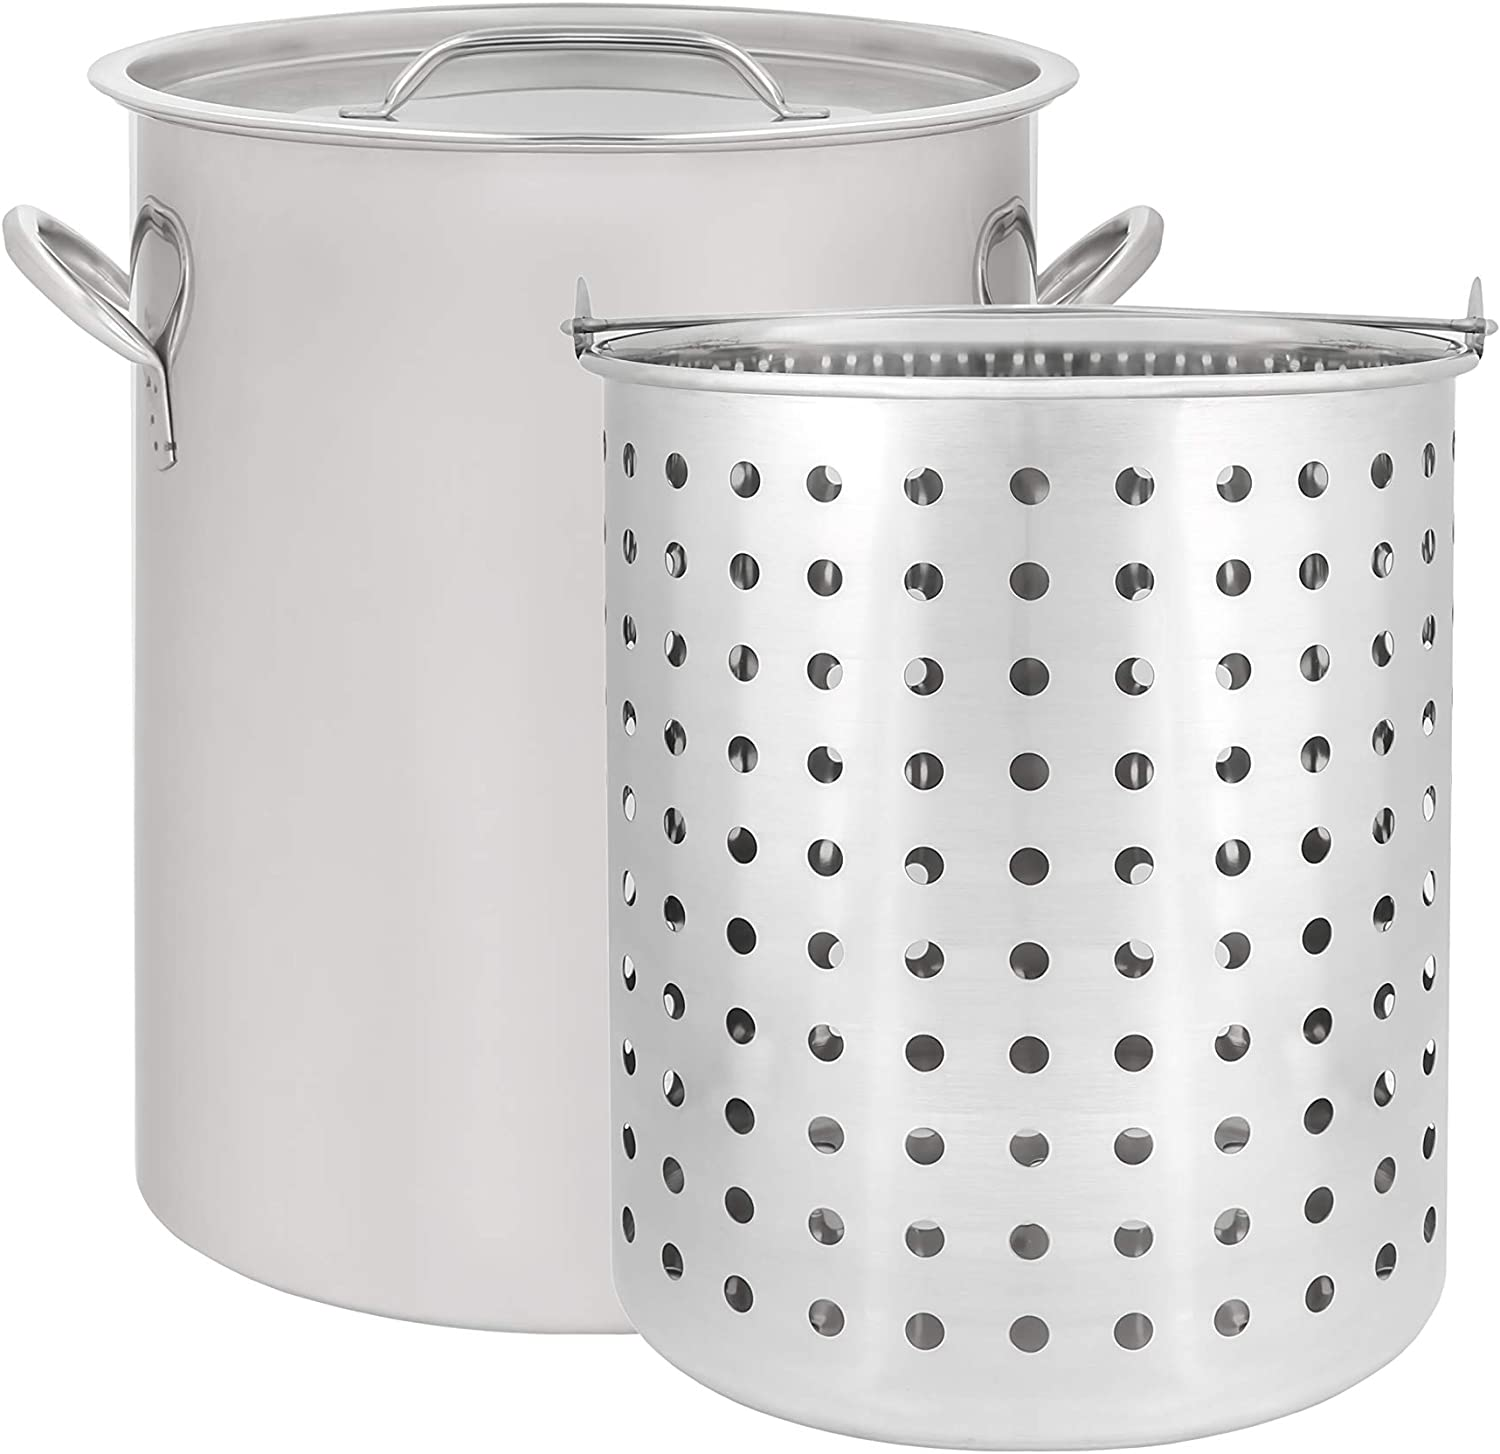 CONCORD 36 QT Stainless Steel Stock Pot w/ Basket. Heavy Kettle. Cookware for Boiling (36)